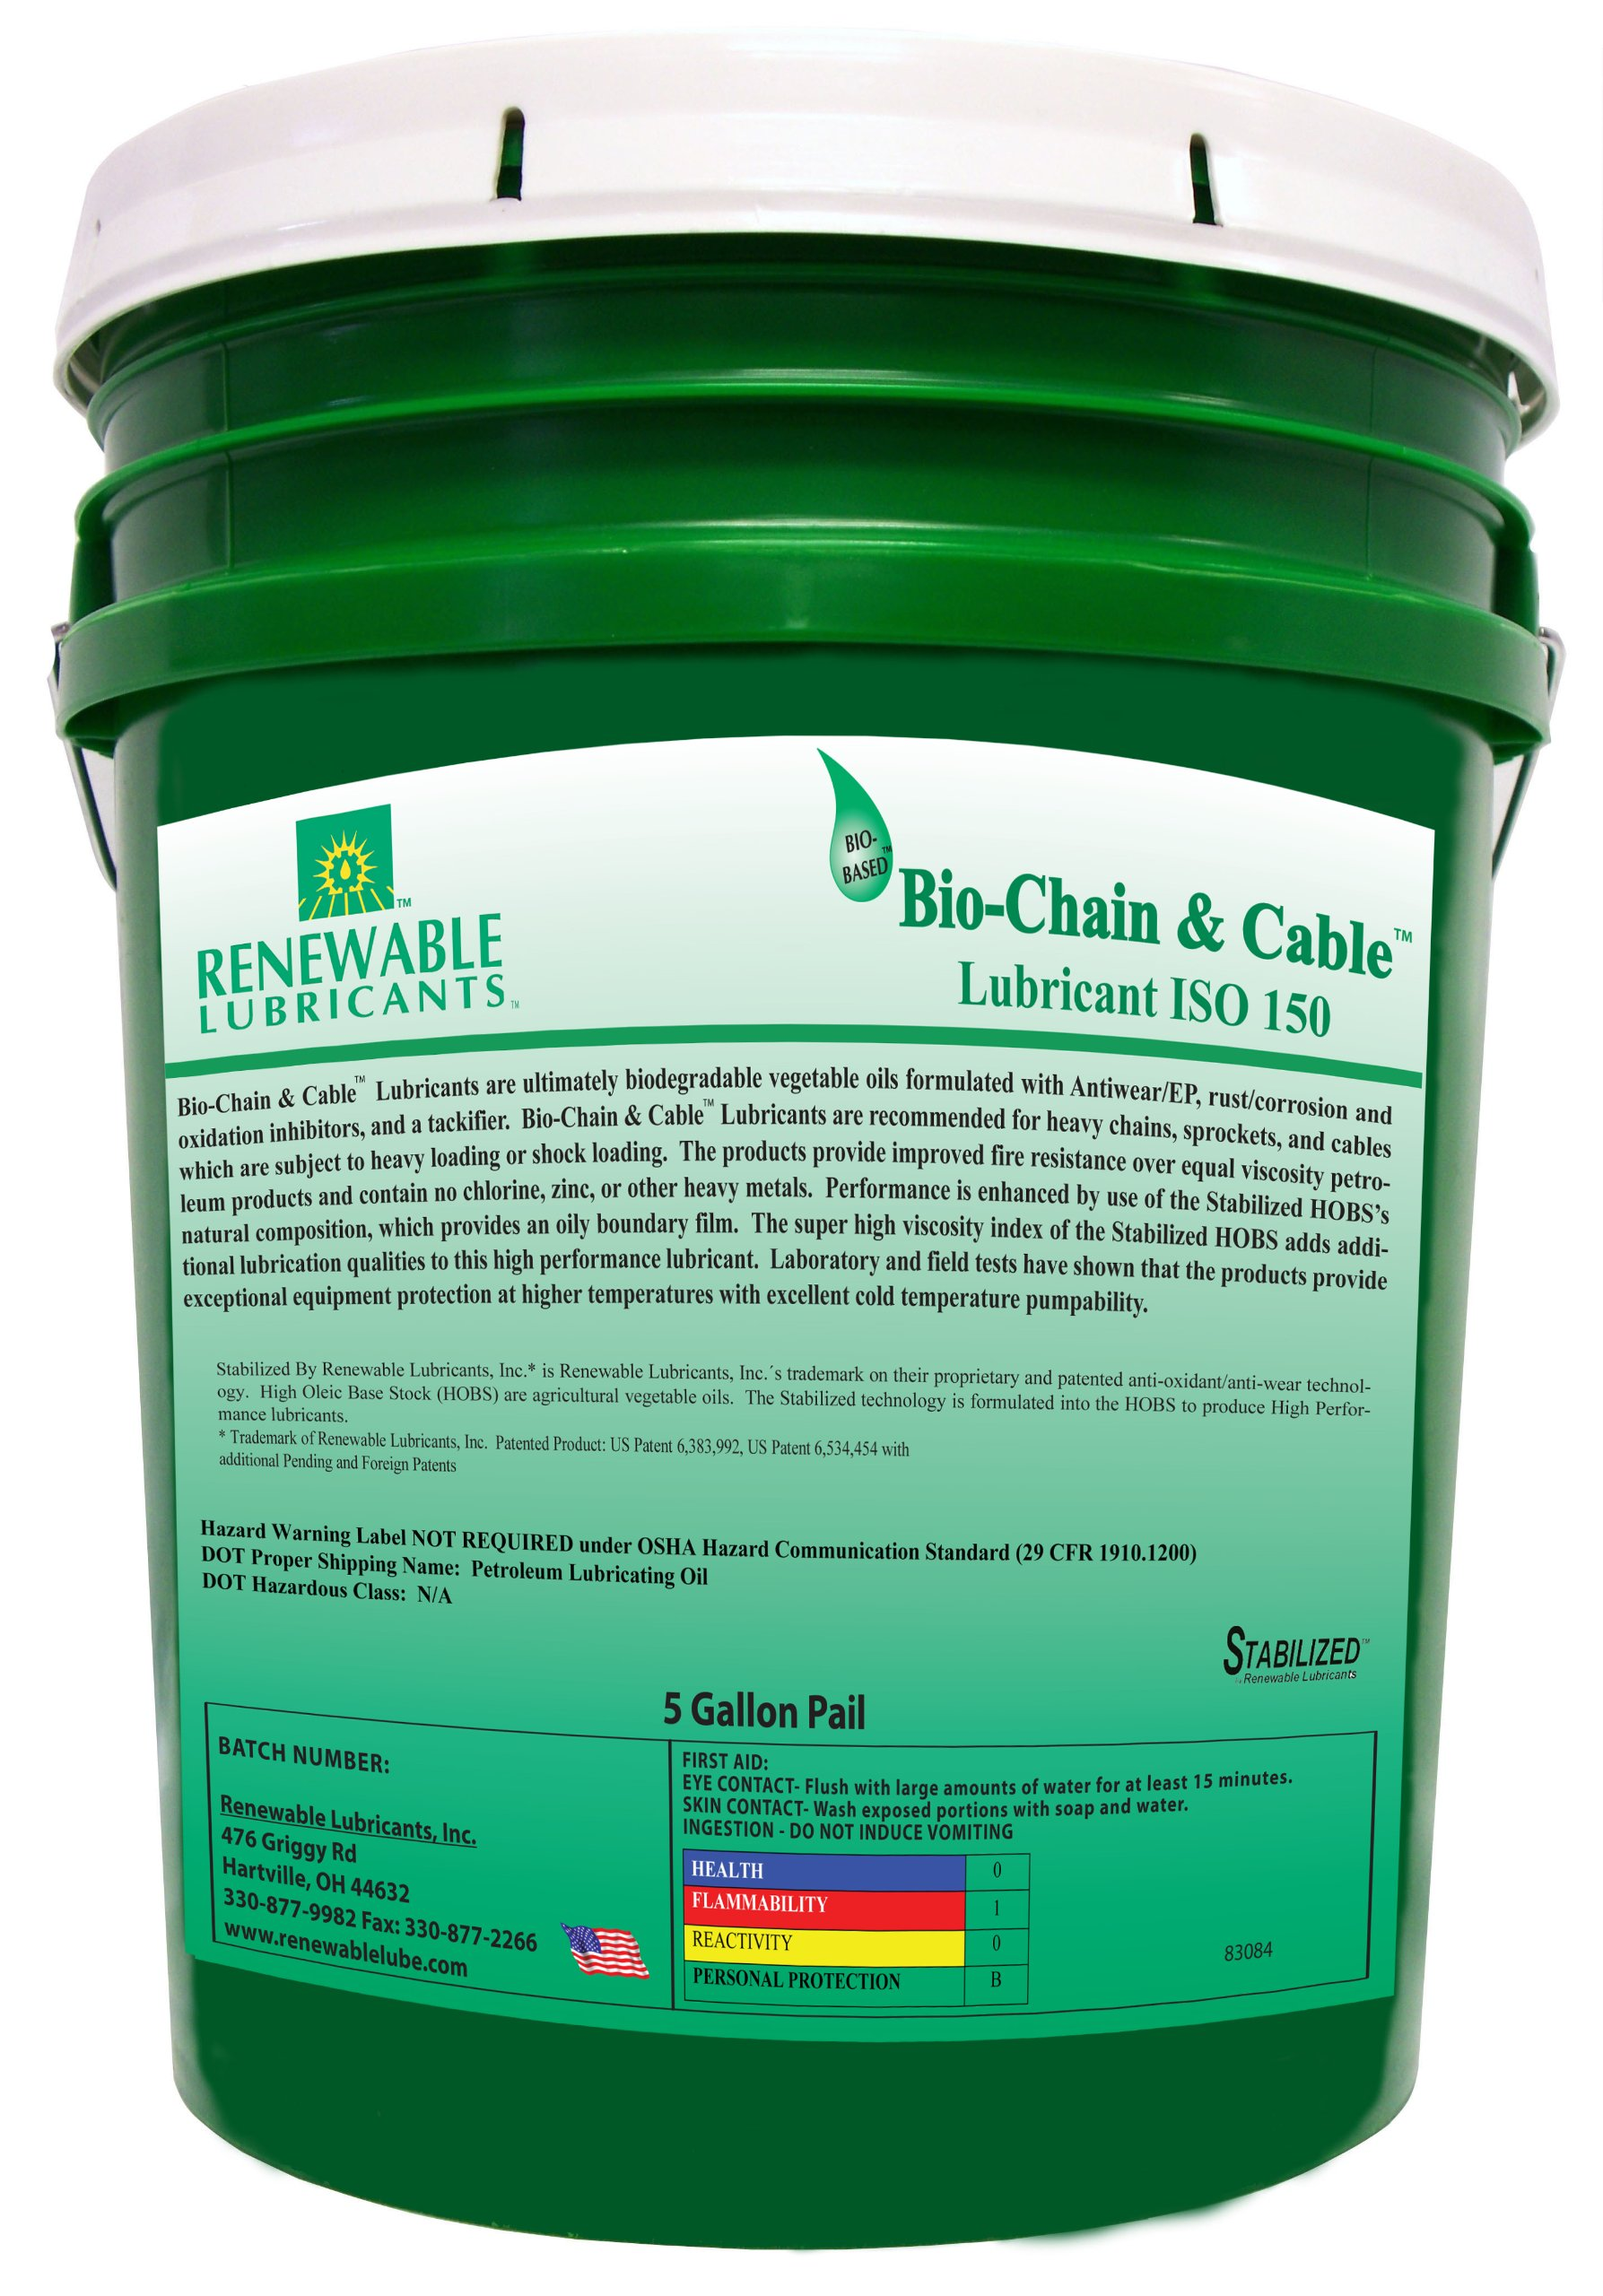 Renewable Lubricants Bio-Chain and Cable ISO 150 Lubricant Oil, 5 Gallon Pail